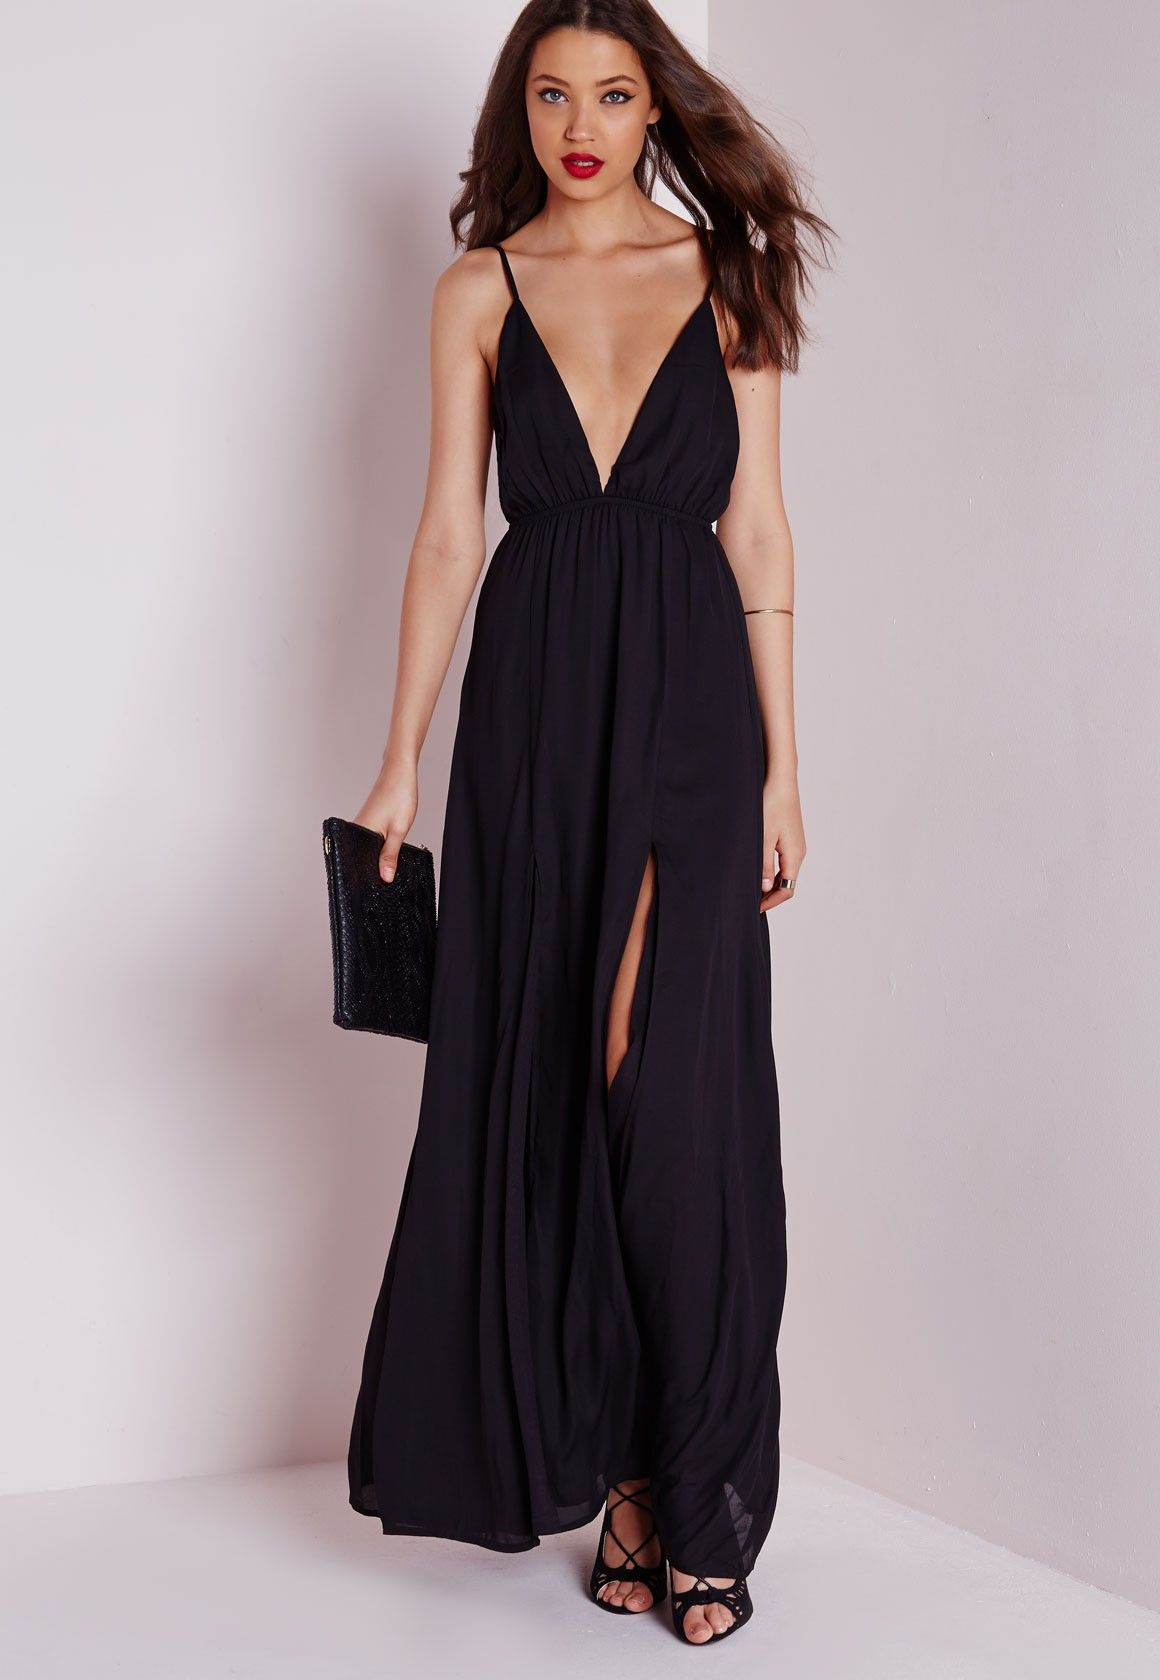 Images of Black Maxi Dresses - Reikian